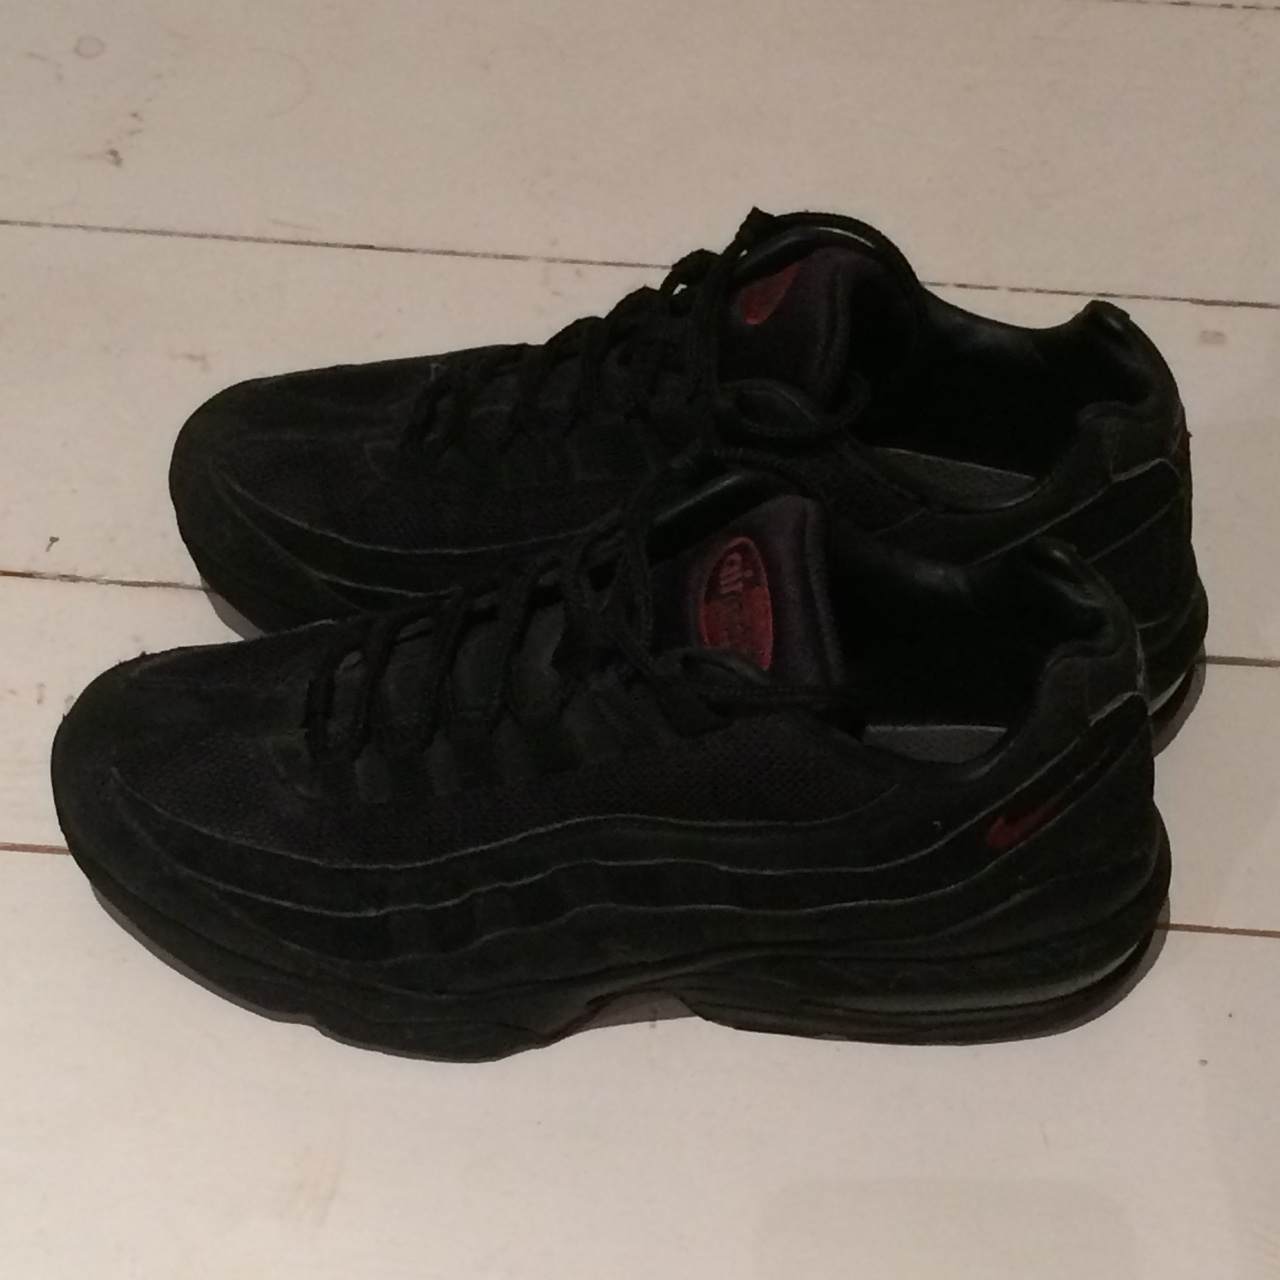 Nike air max 95's in all black with red tick. Size Depop